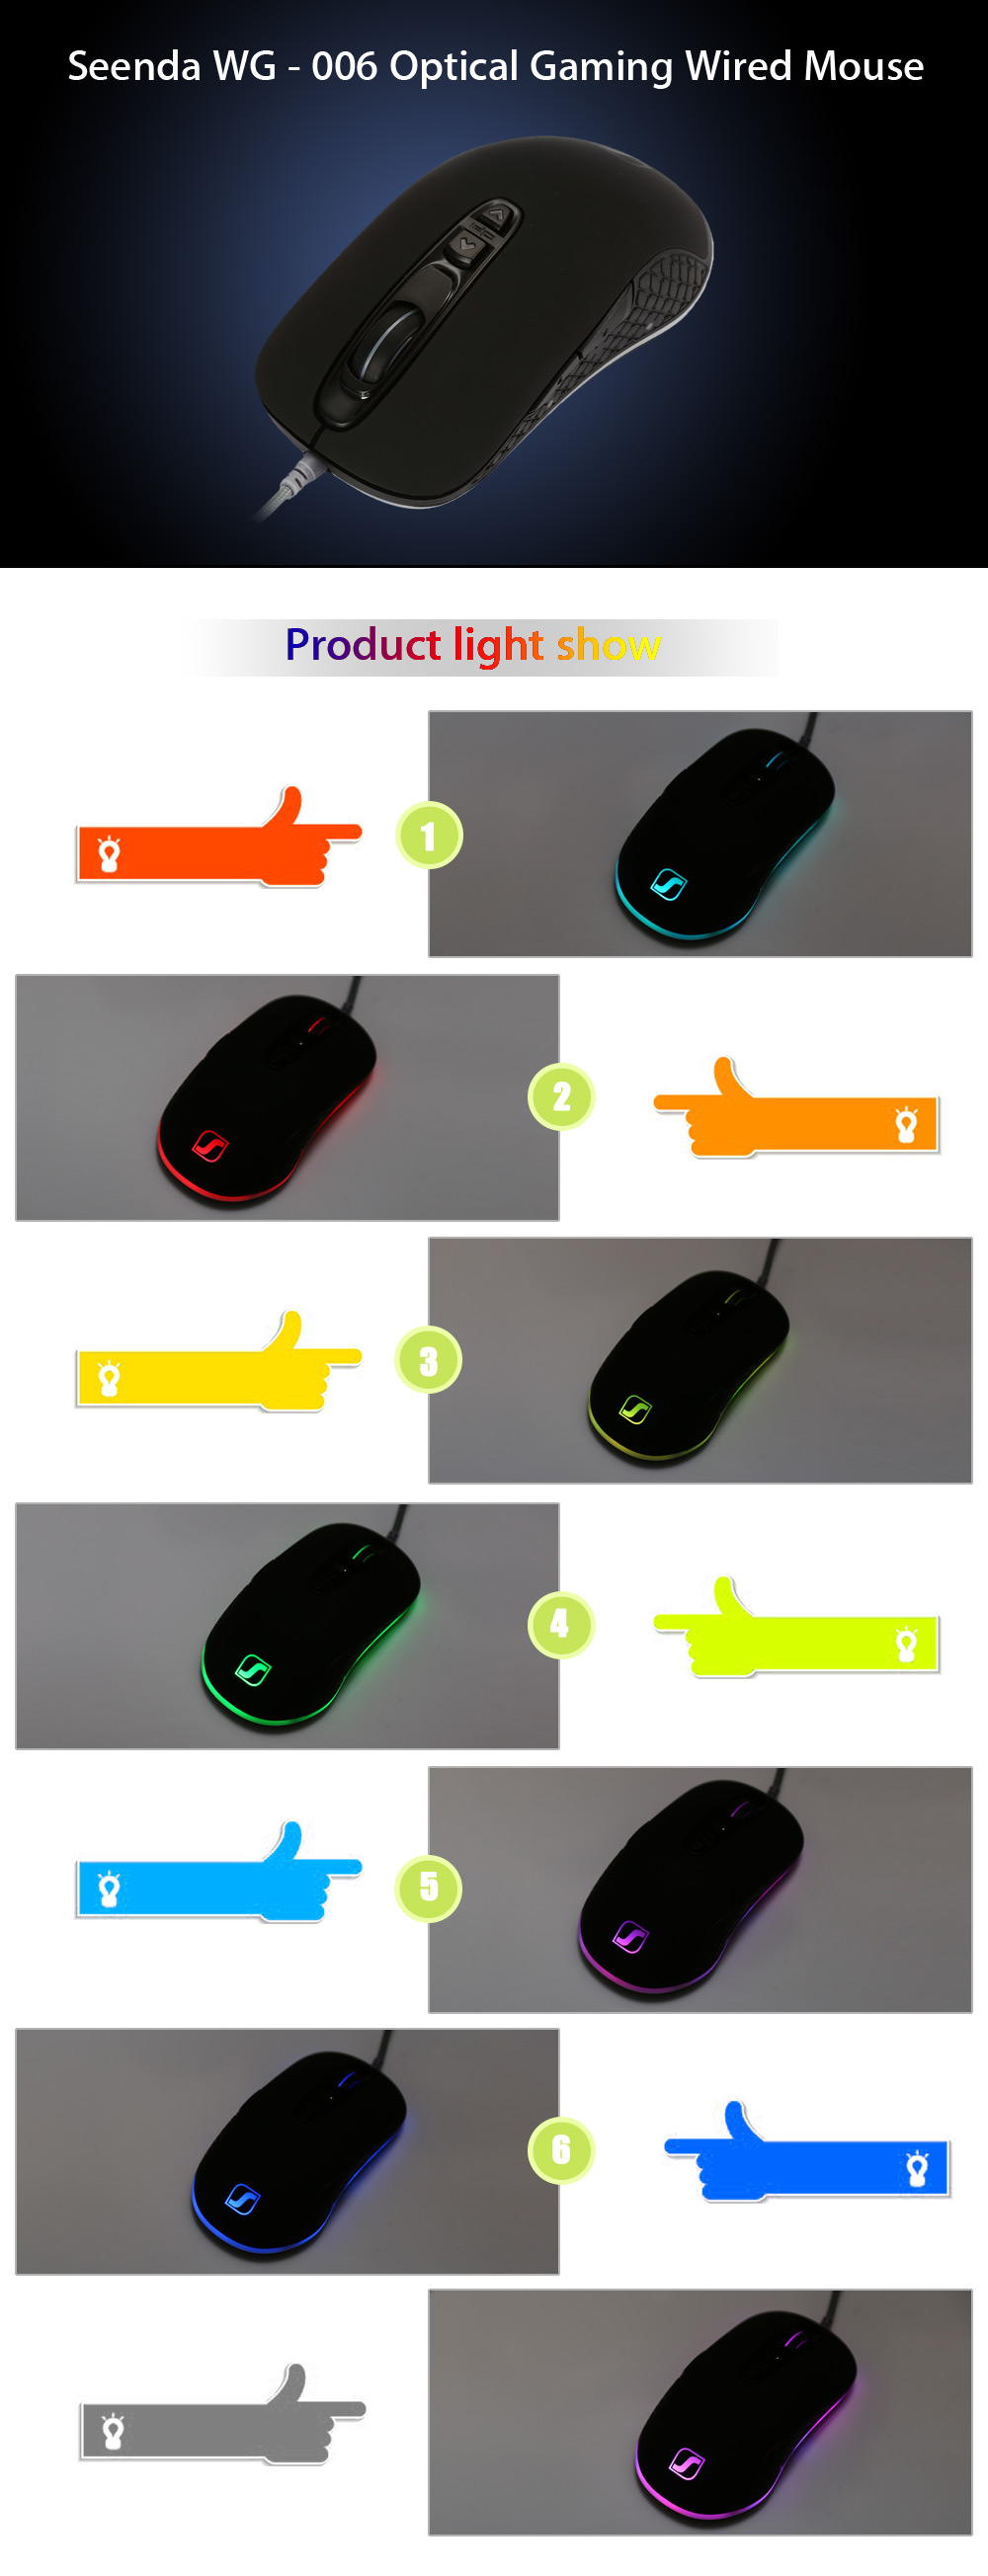 Seenda WG - 006 Optical Gaming Wired Mouse 4000 DPI with LED Backlight